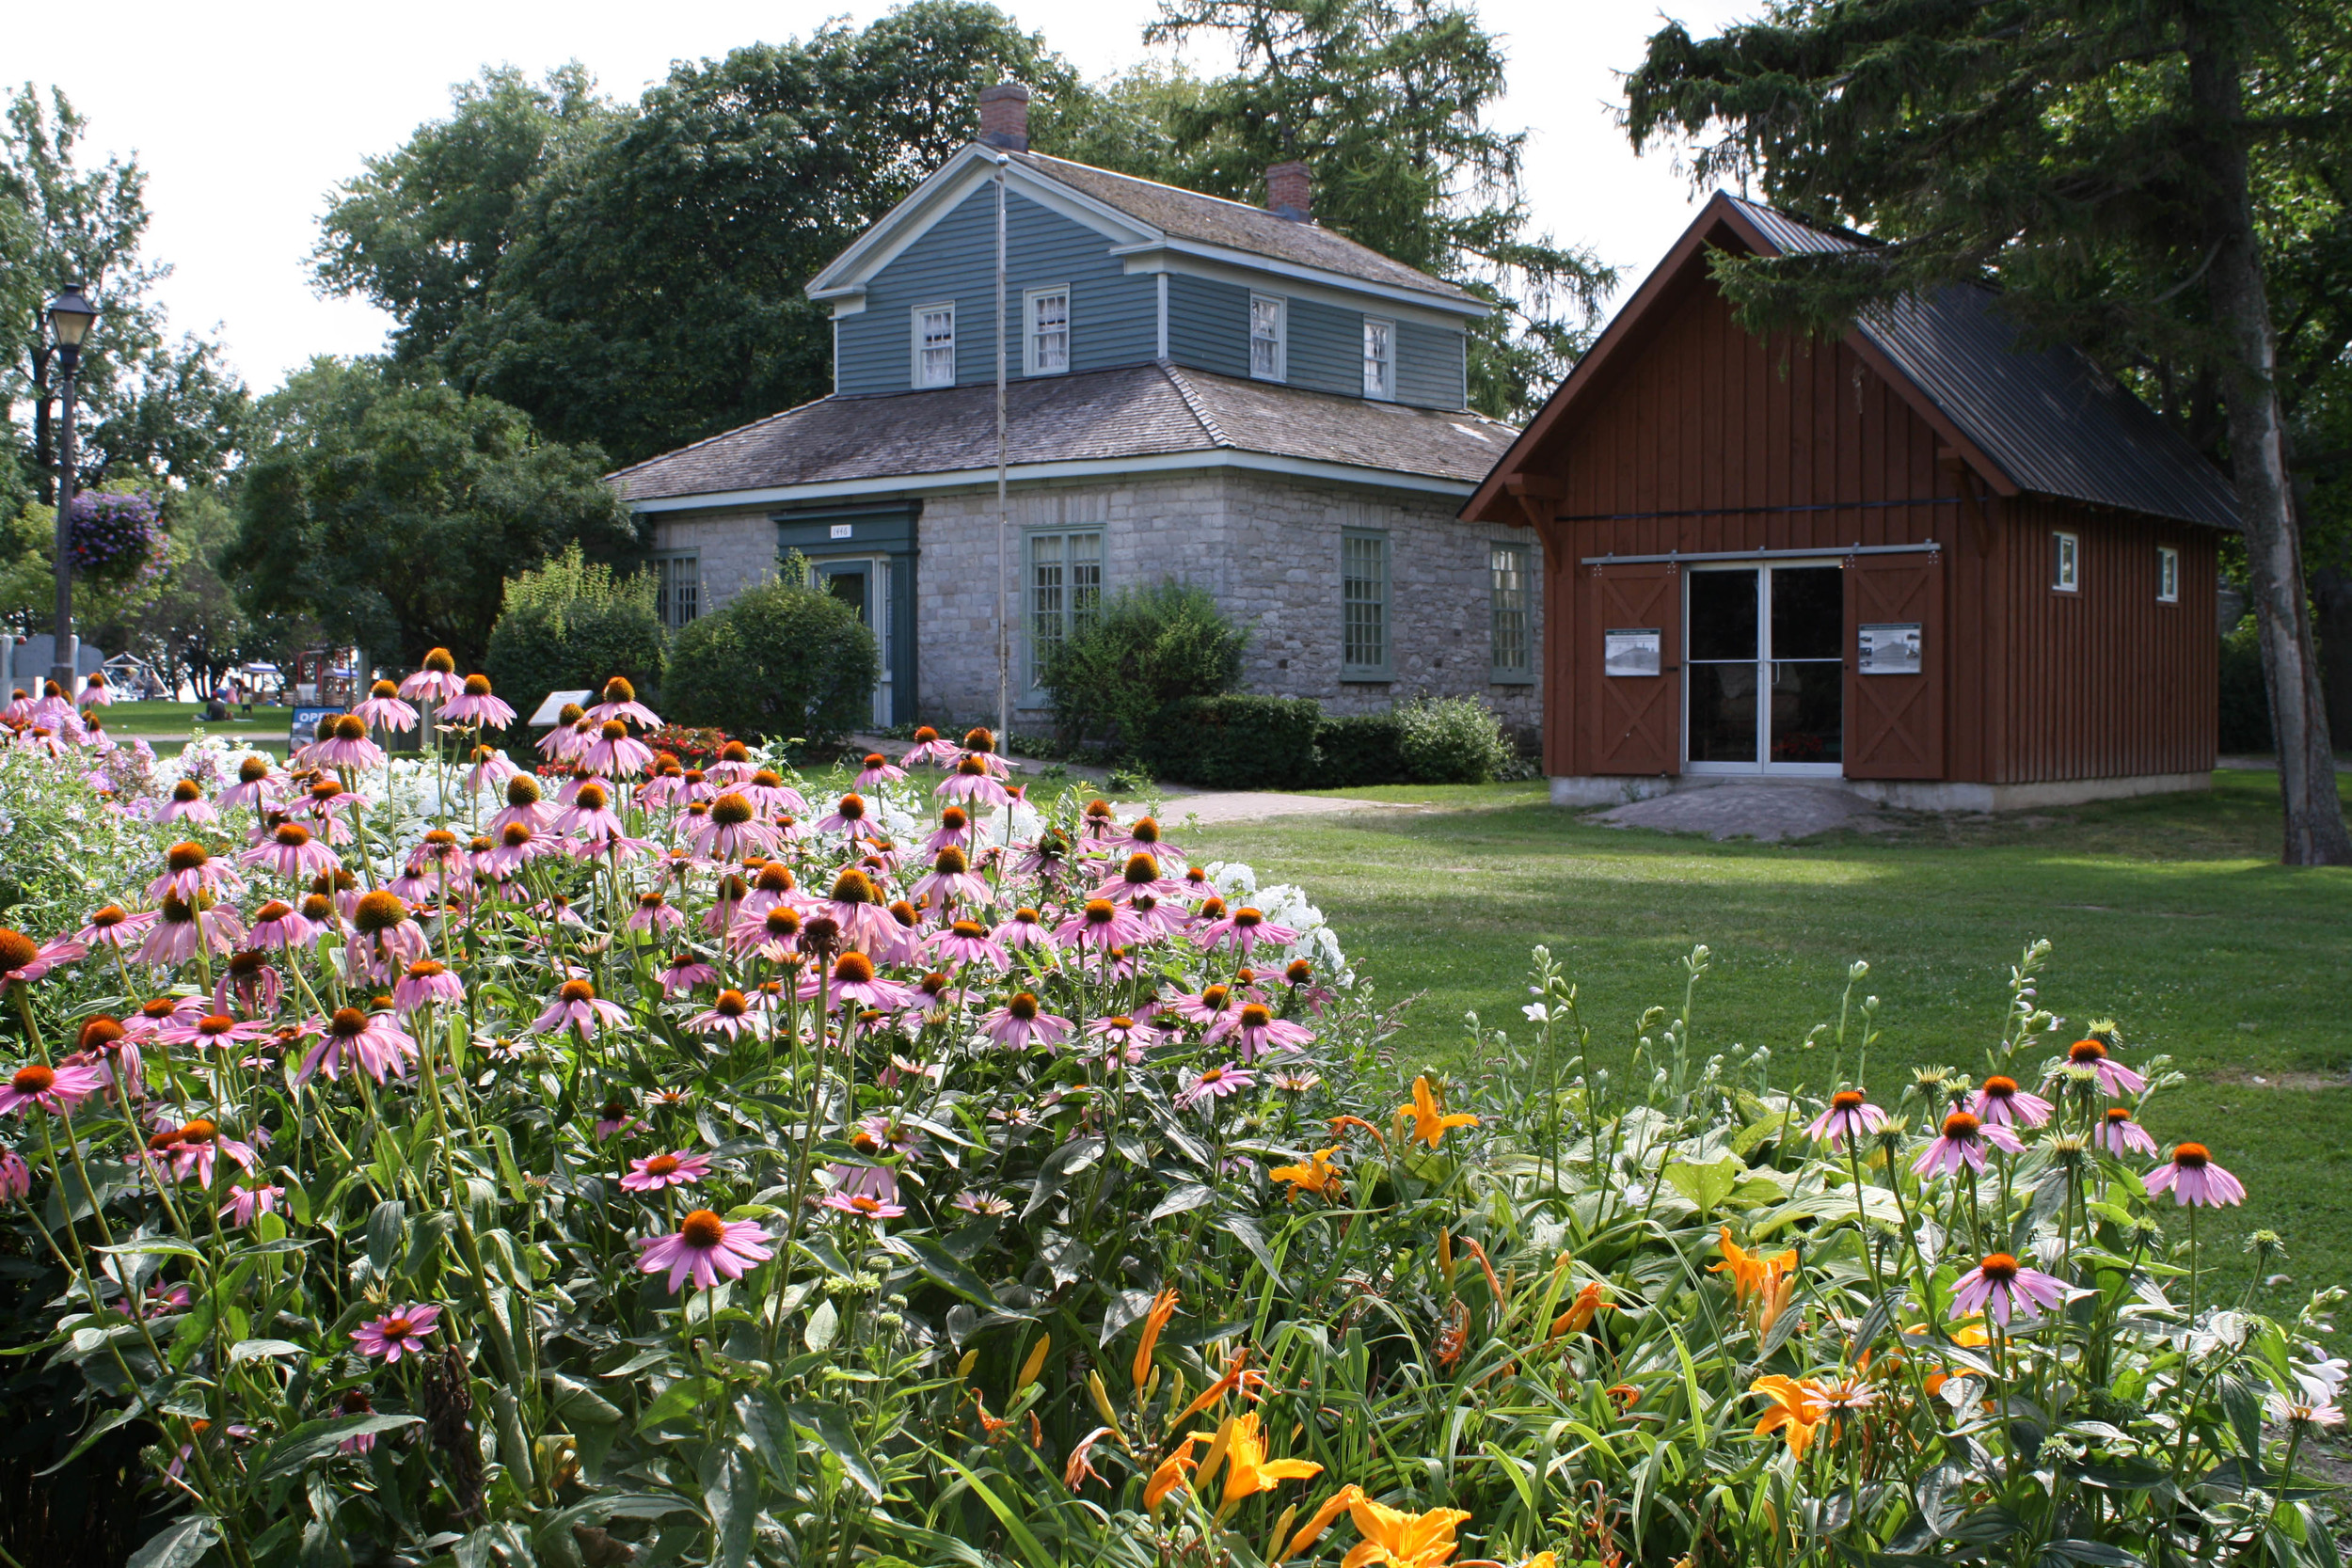 Oshawa Community Museum - located in Oshawa's Lakeview Park on the shores of Lake Ontario.